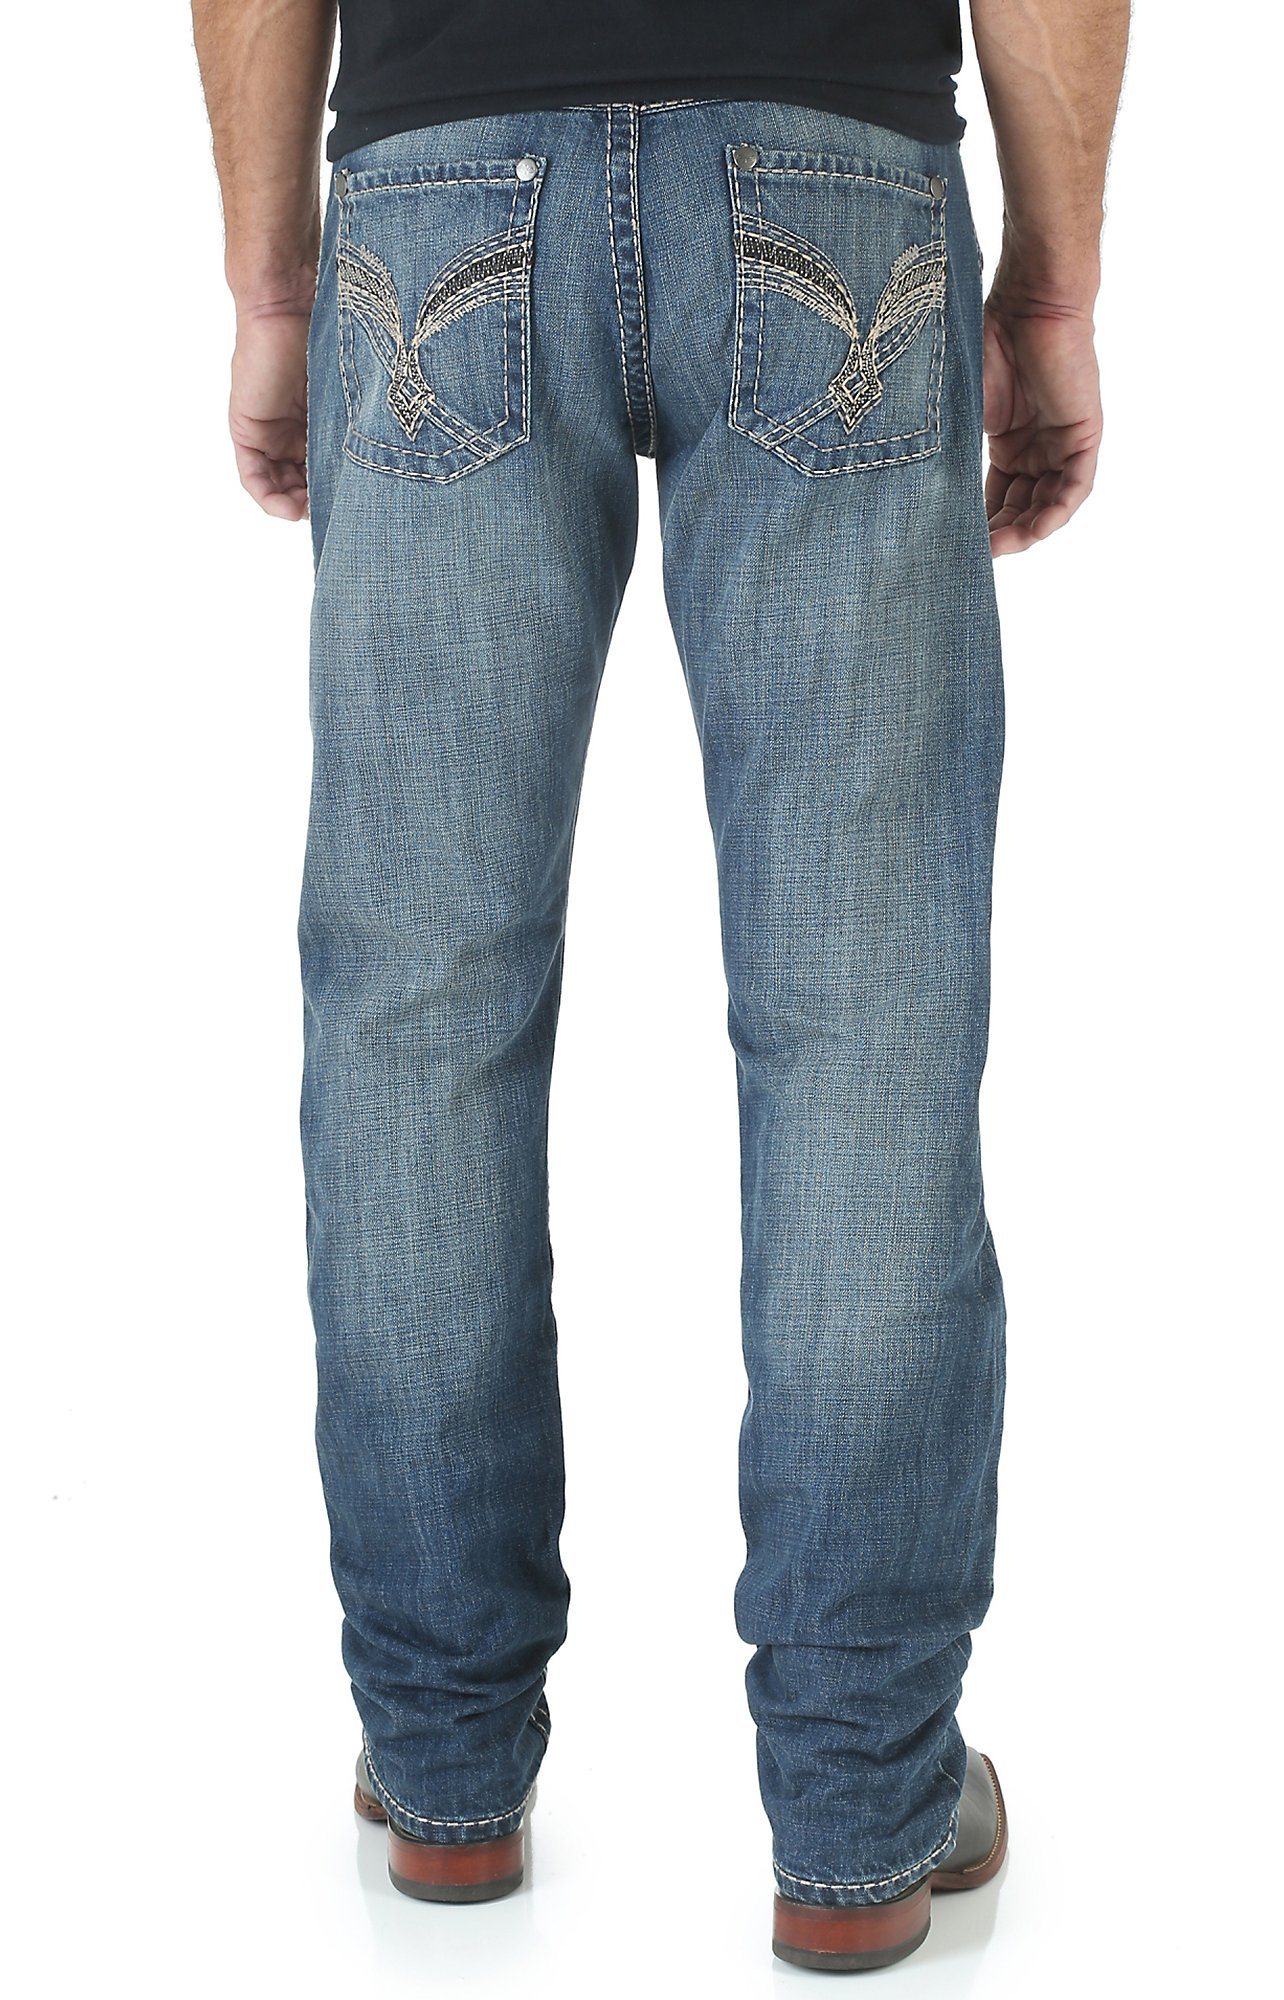 Men's Clearance Apparel - Discount Western Wear at Cavender's